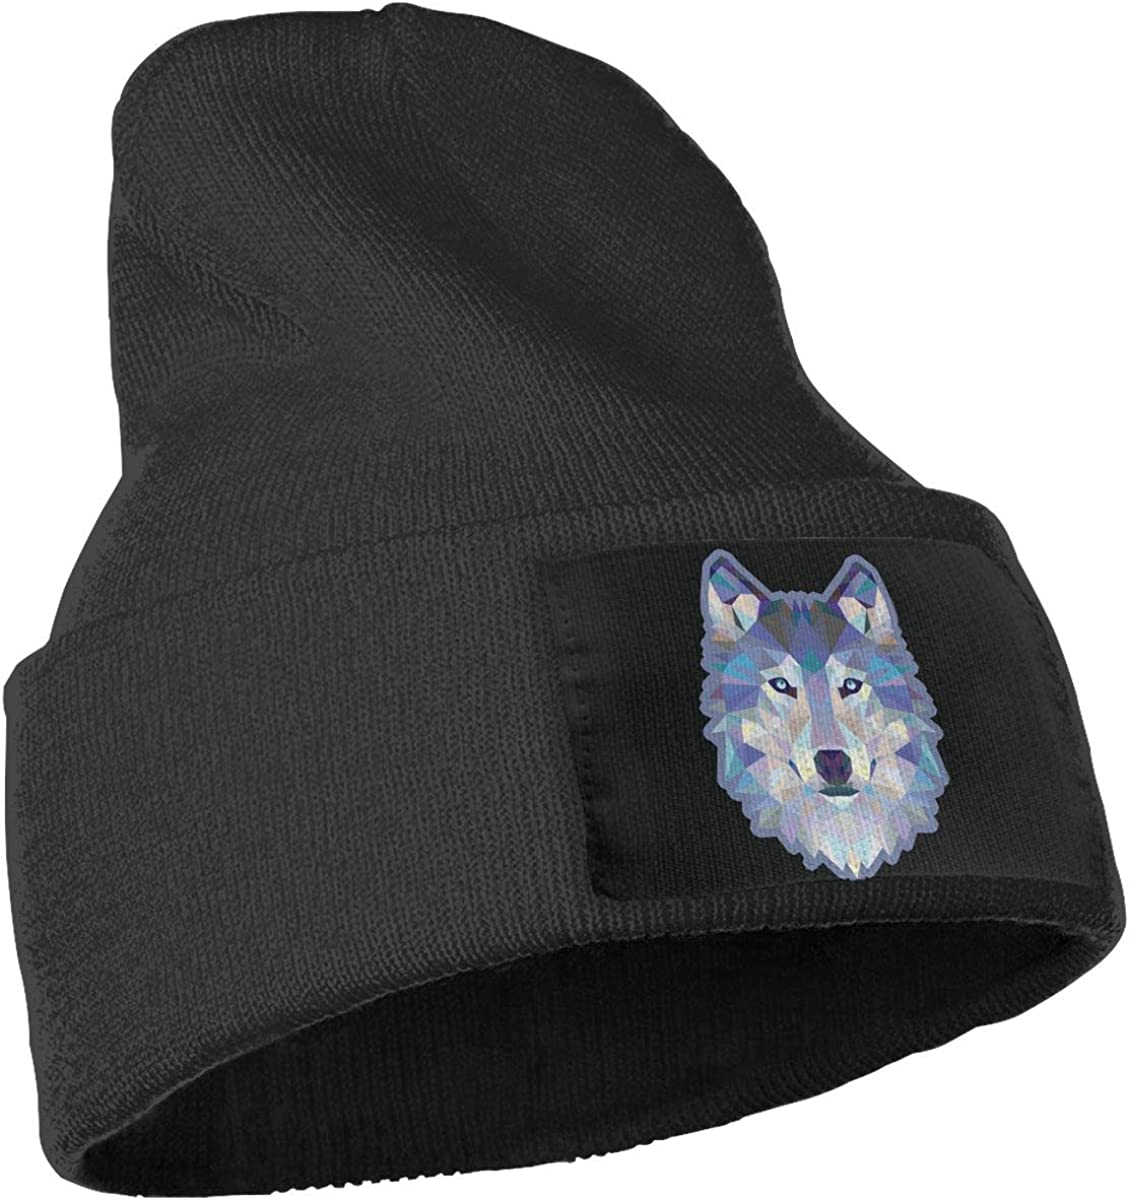 Blue Wolf Printed Warm Winter Hat Knit Beanie Skull Cap Cuff Beanie Hat Winter Hats for Men /& Women